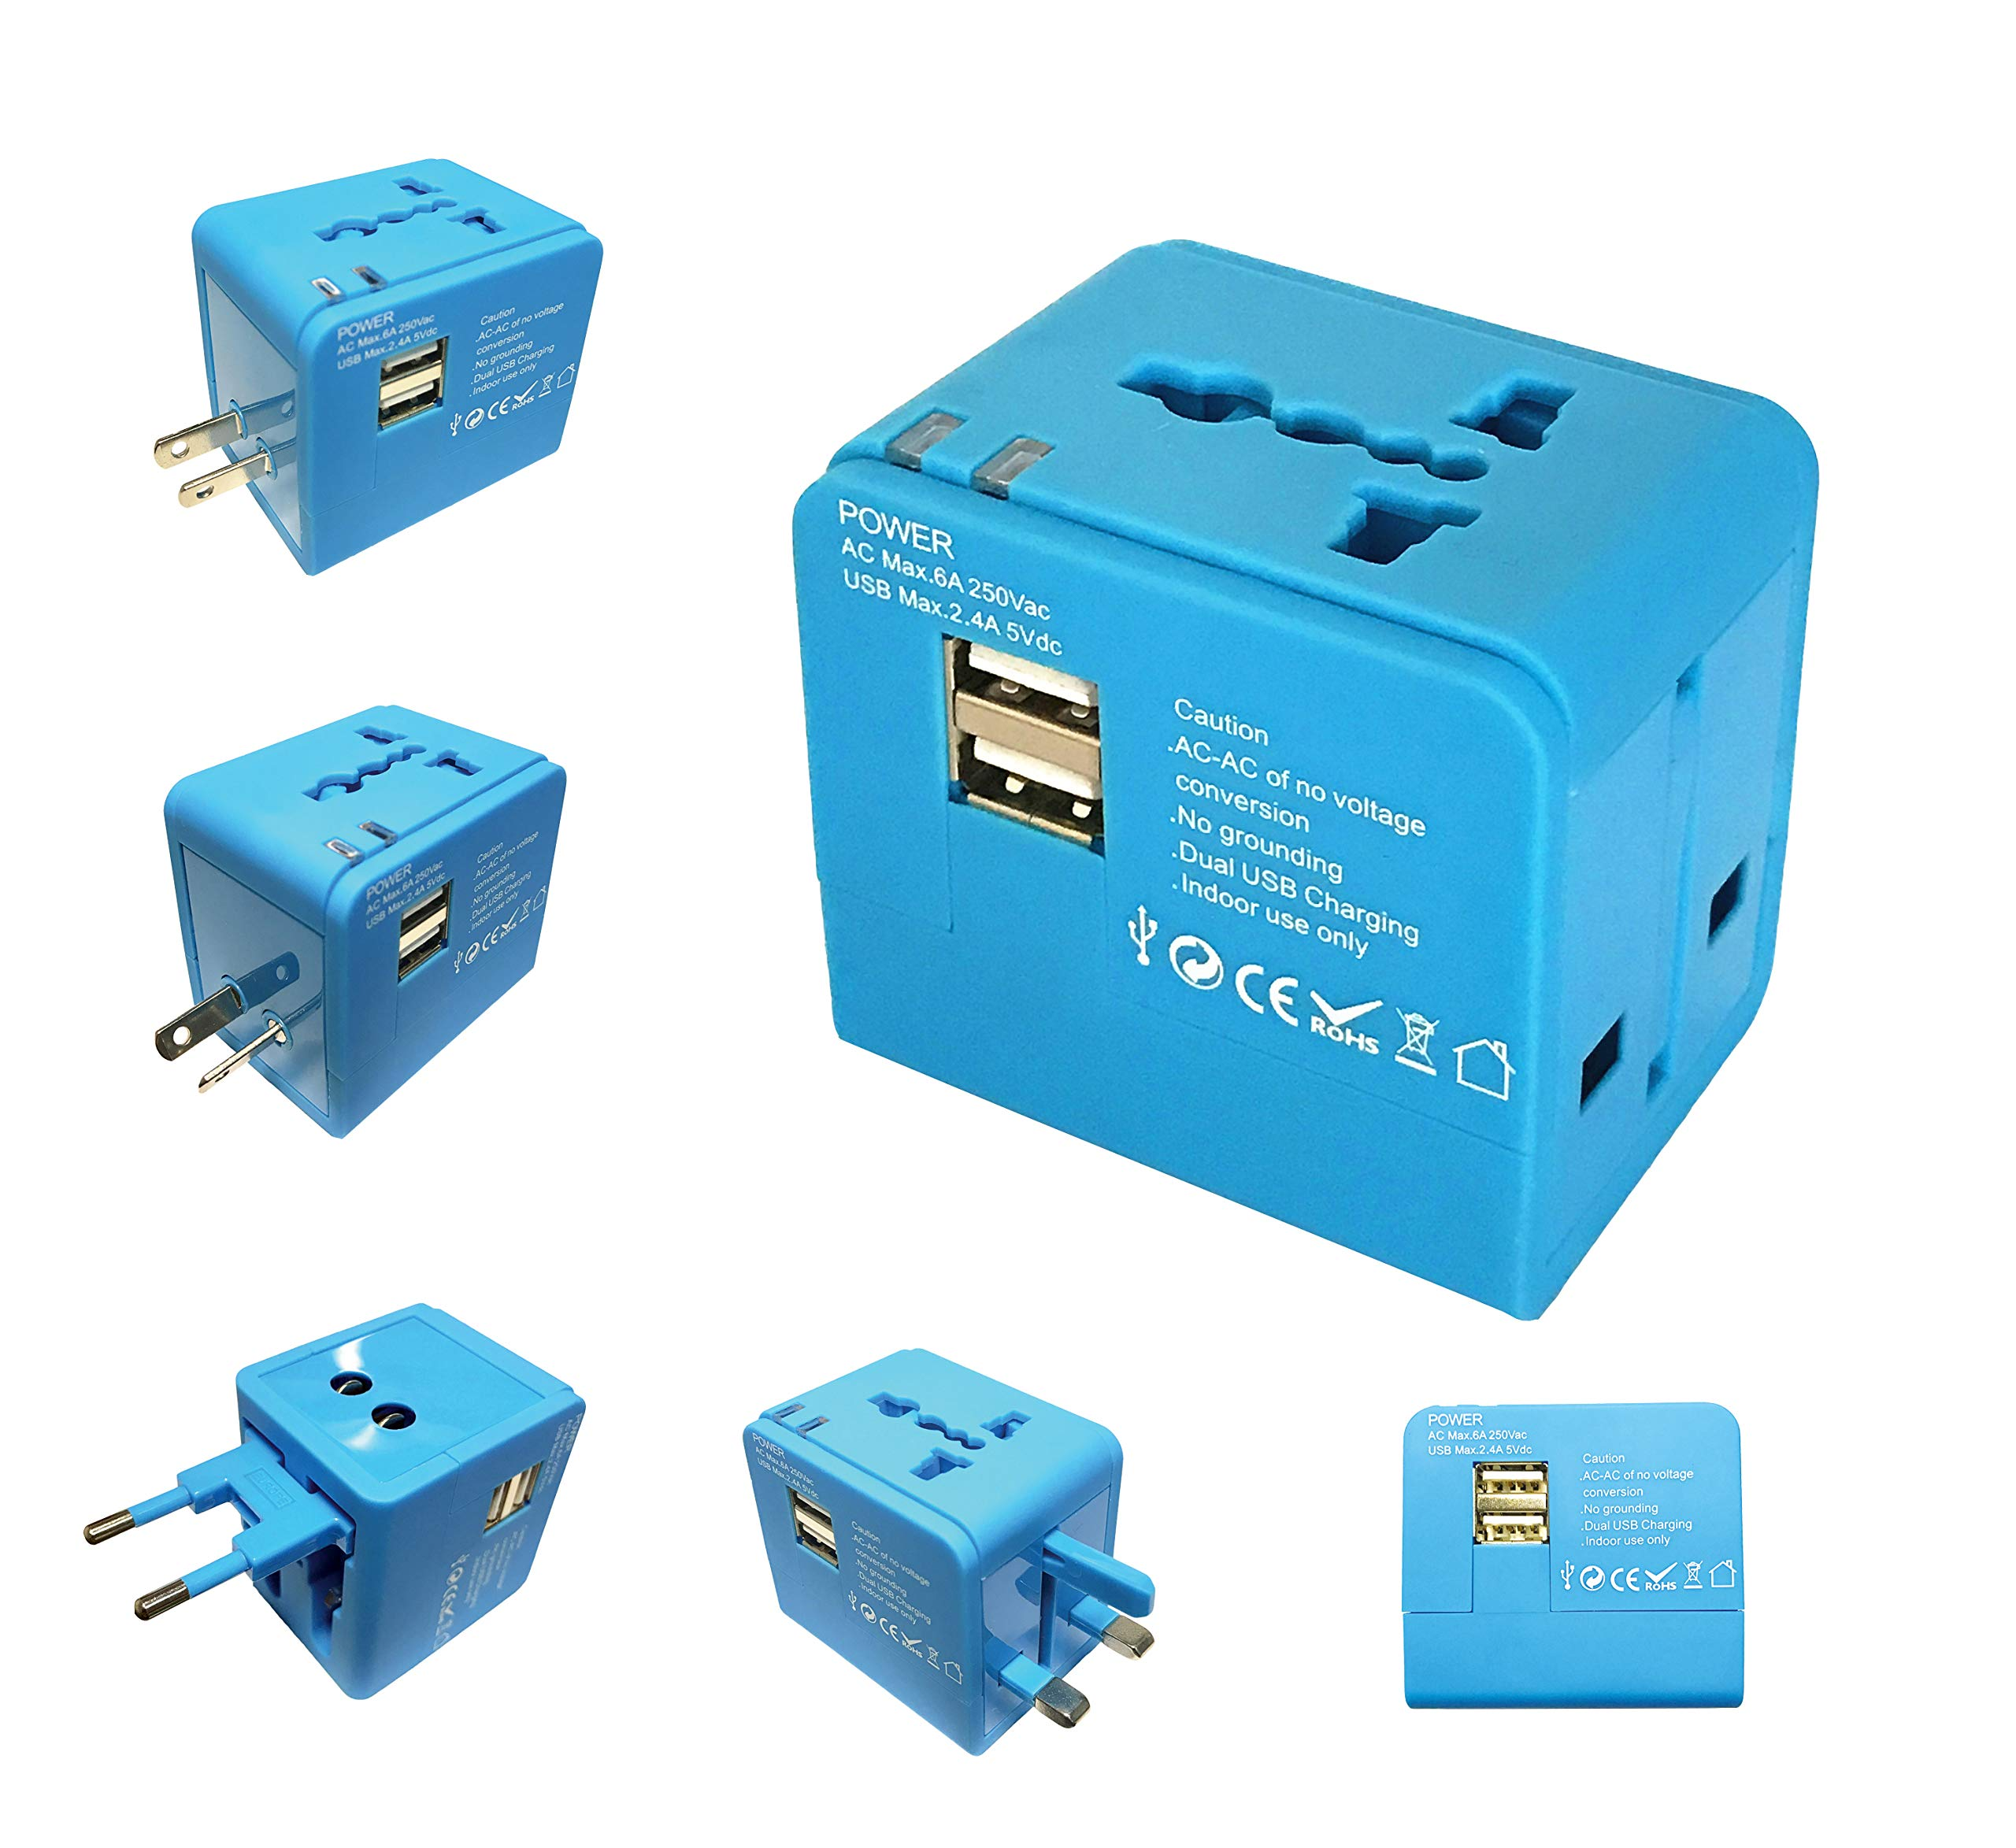 Sycon All-in-One International Travel Plug Adapter with Dual USB Ports (UP-9KU) - Great for iPhone/Smartphones/Laptops & More (All in One Adapter/W USB)